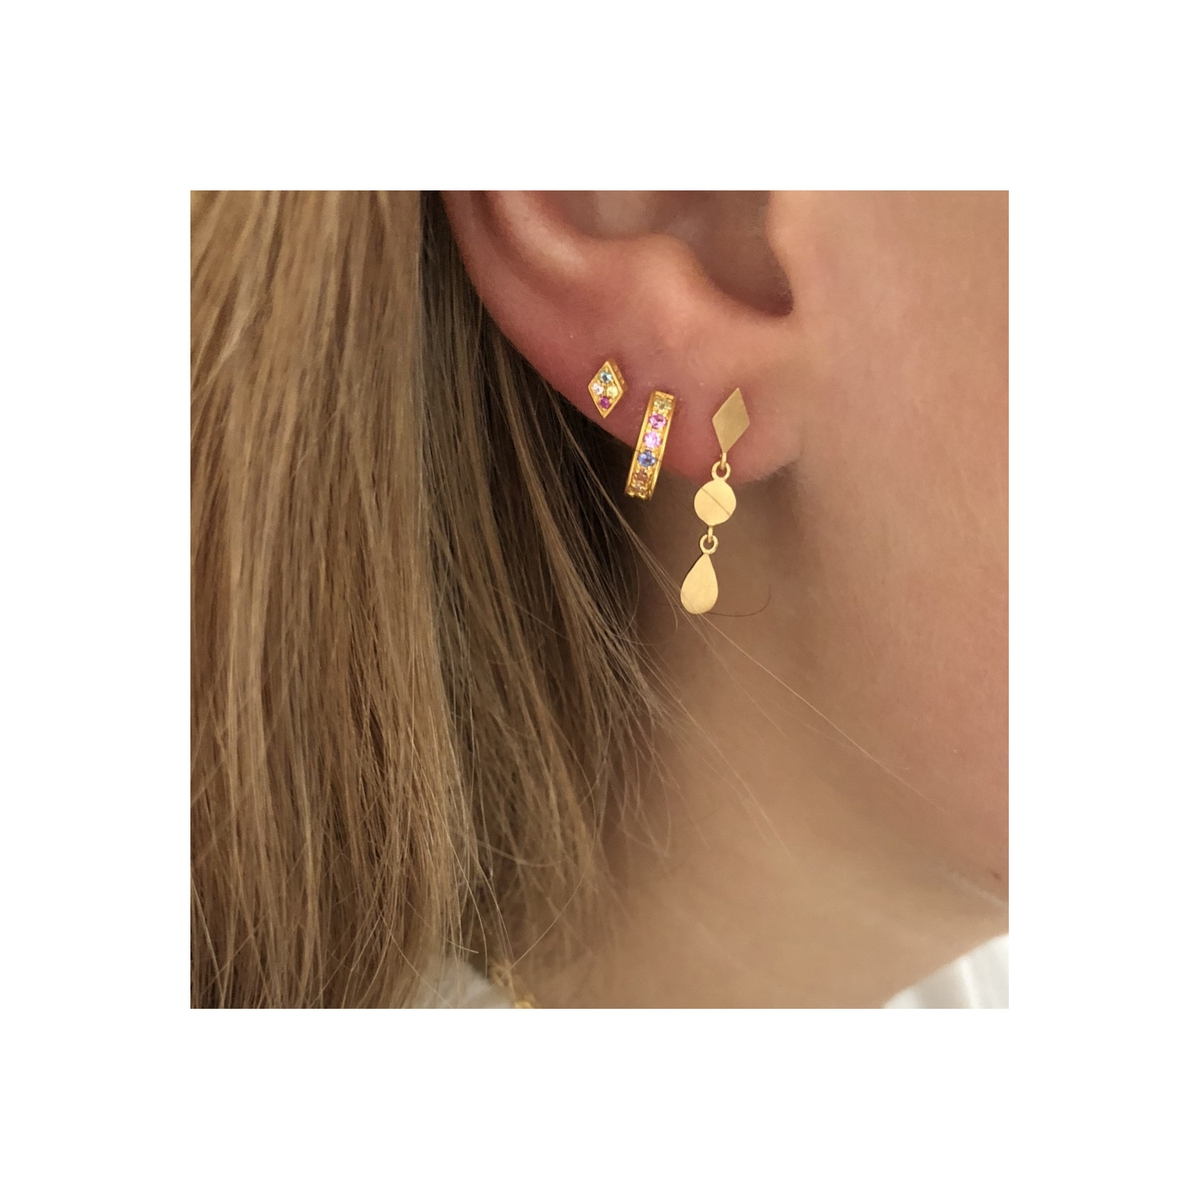 Stine A - Ørering Petit Candy Creol Earring Gold